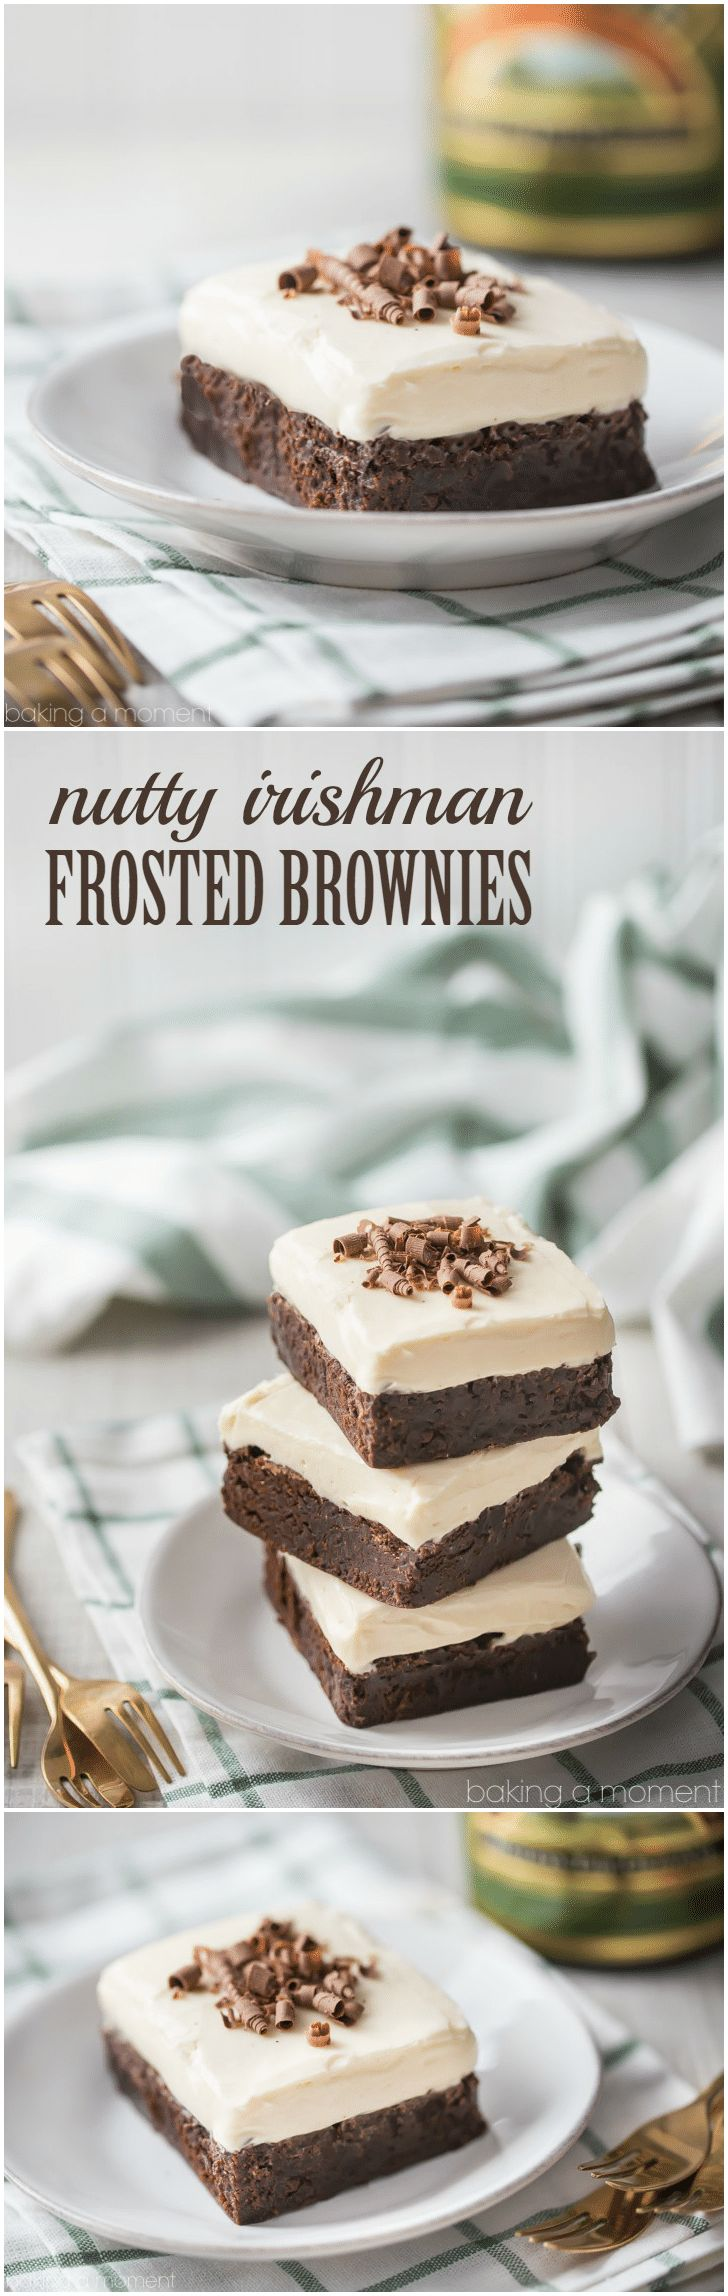 Nutty Irishman Frosted Brownies: Omg the combination of Bailey's, hazelnut, and fudgy chocolate brownie is insane!  Really simple and straightforward recipe, I'll definitely be making it again.   food desserts chocolate via @bakingamoment